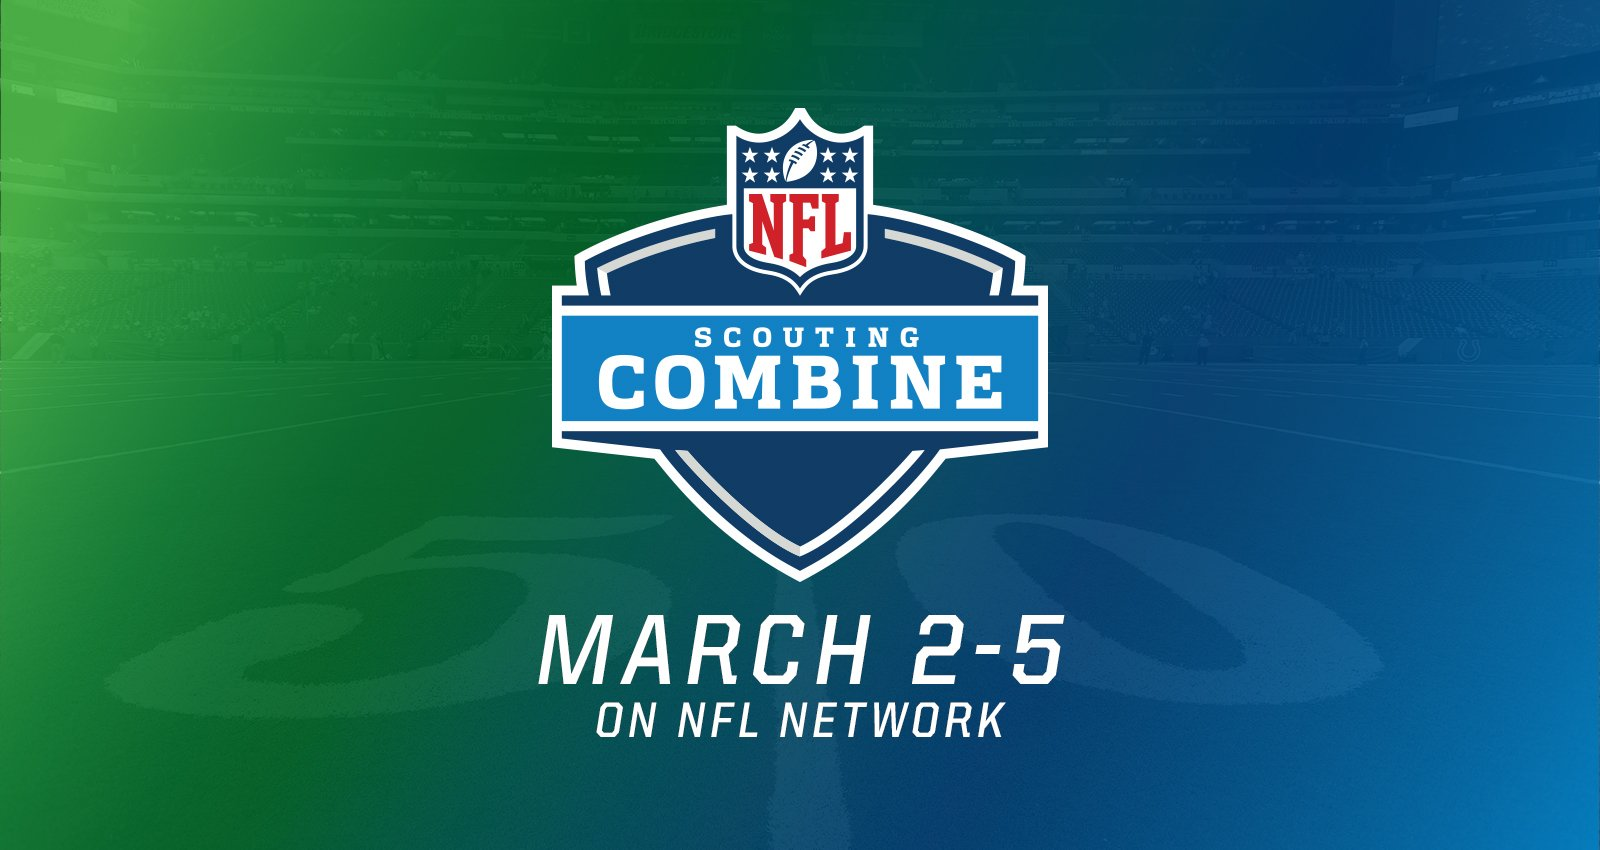 The biggest job interview in the NFL is about to take place at the #NFLCombine.  MORE: https://t.co/rncFCOqhxB https://t.co/iTtj8ijRdl